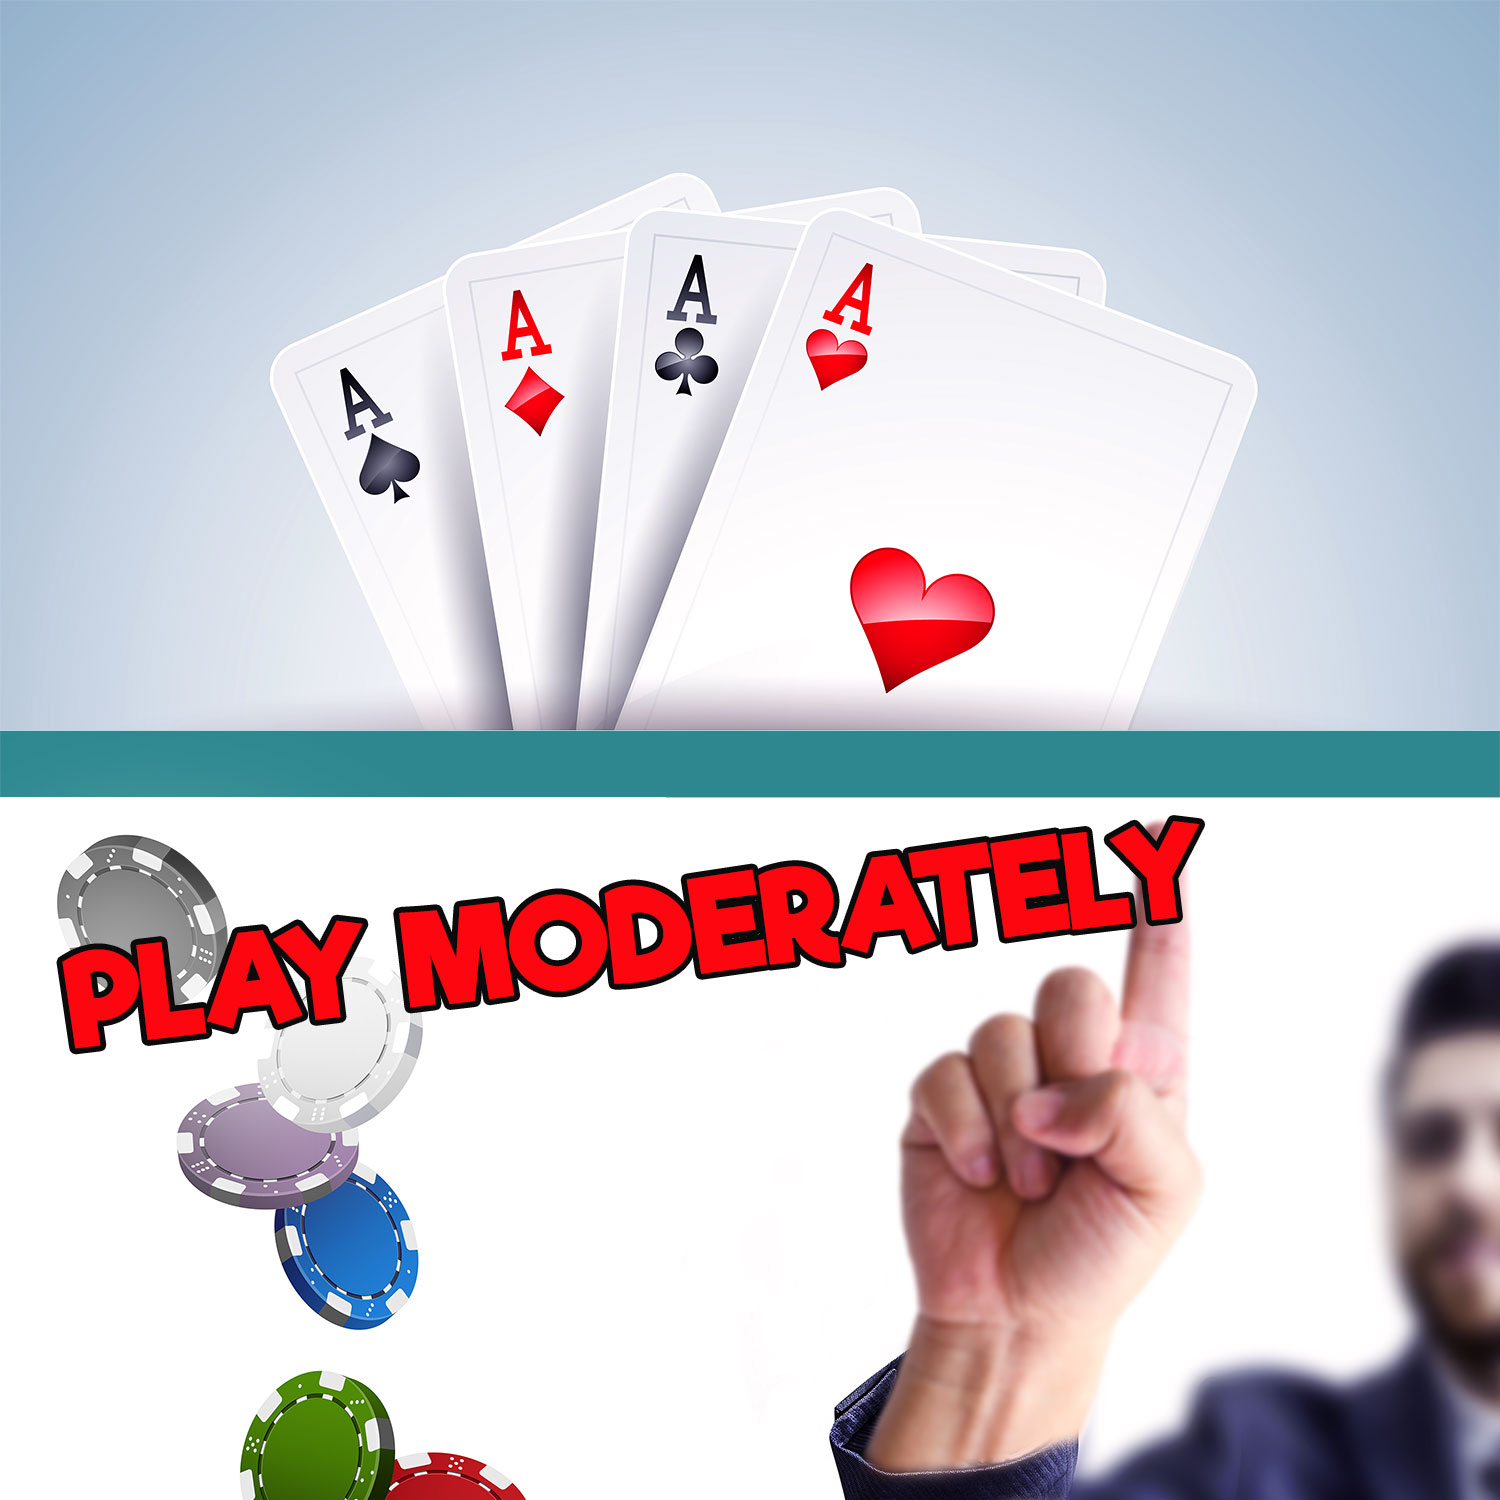 4 Aces, Play Moderately - BlackJack Tips